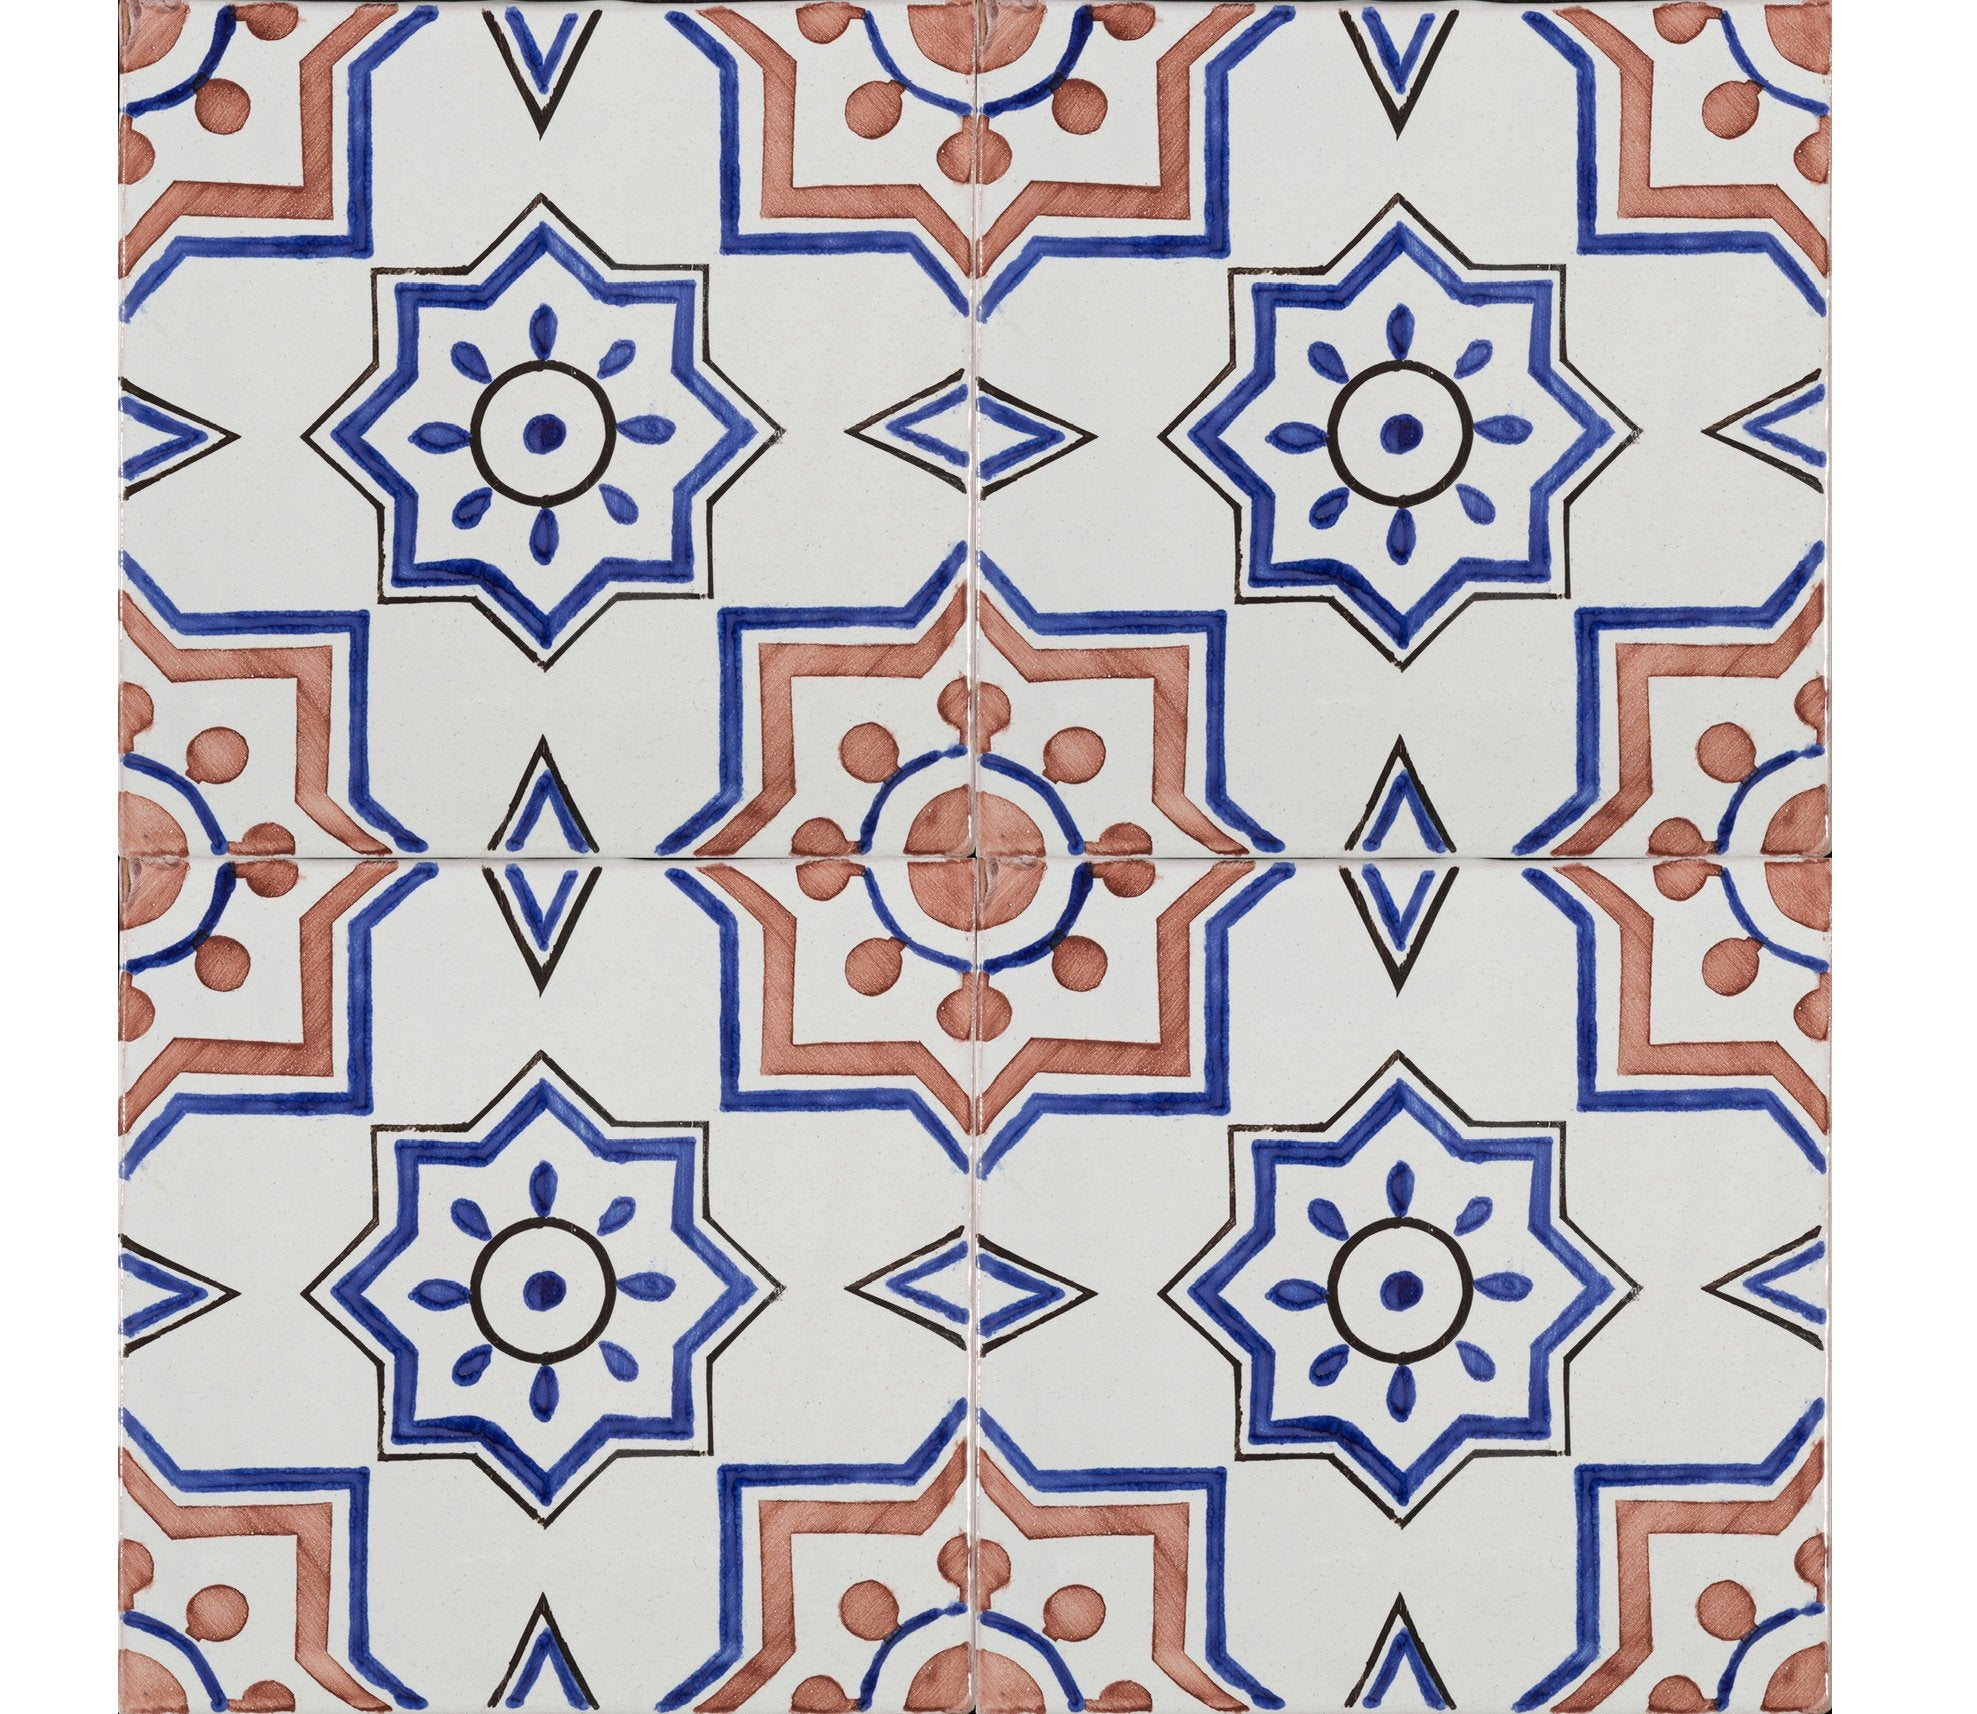 Series S Handpainted Tiles Product Image 38